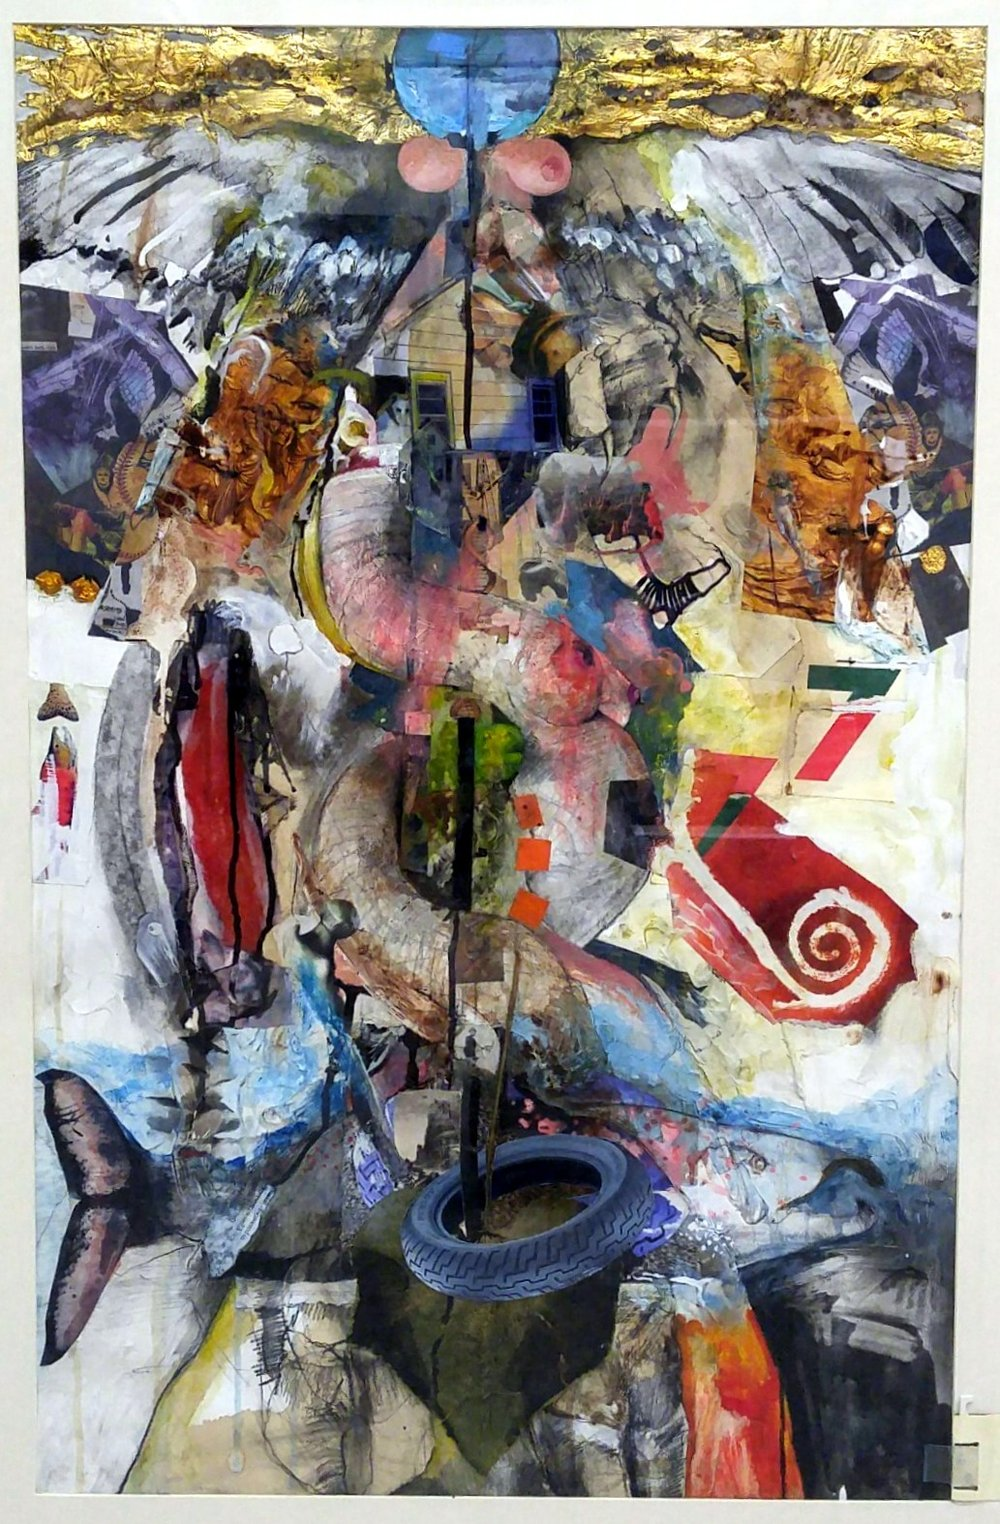 Dan Smith collage Caduce U.S. Birdhouse.jpg